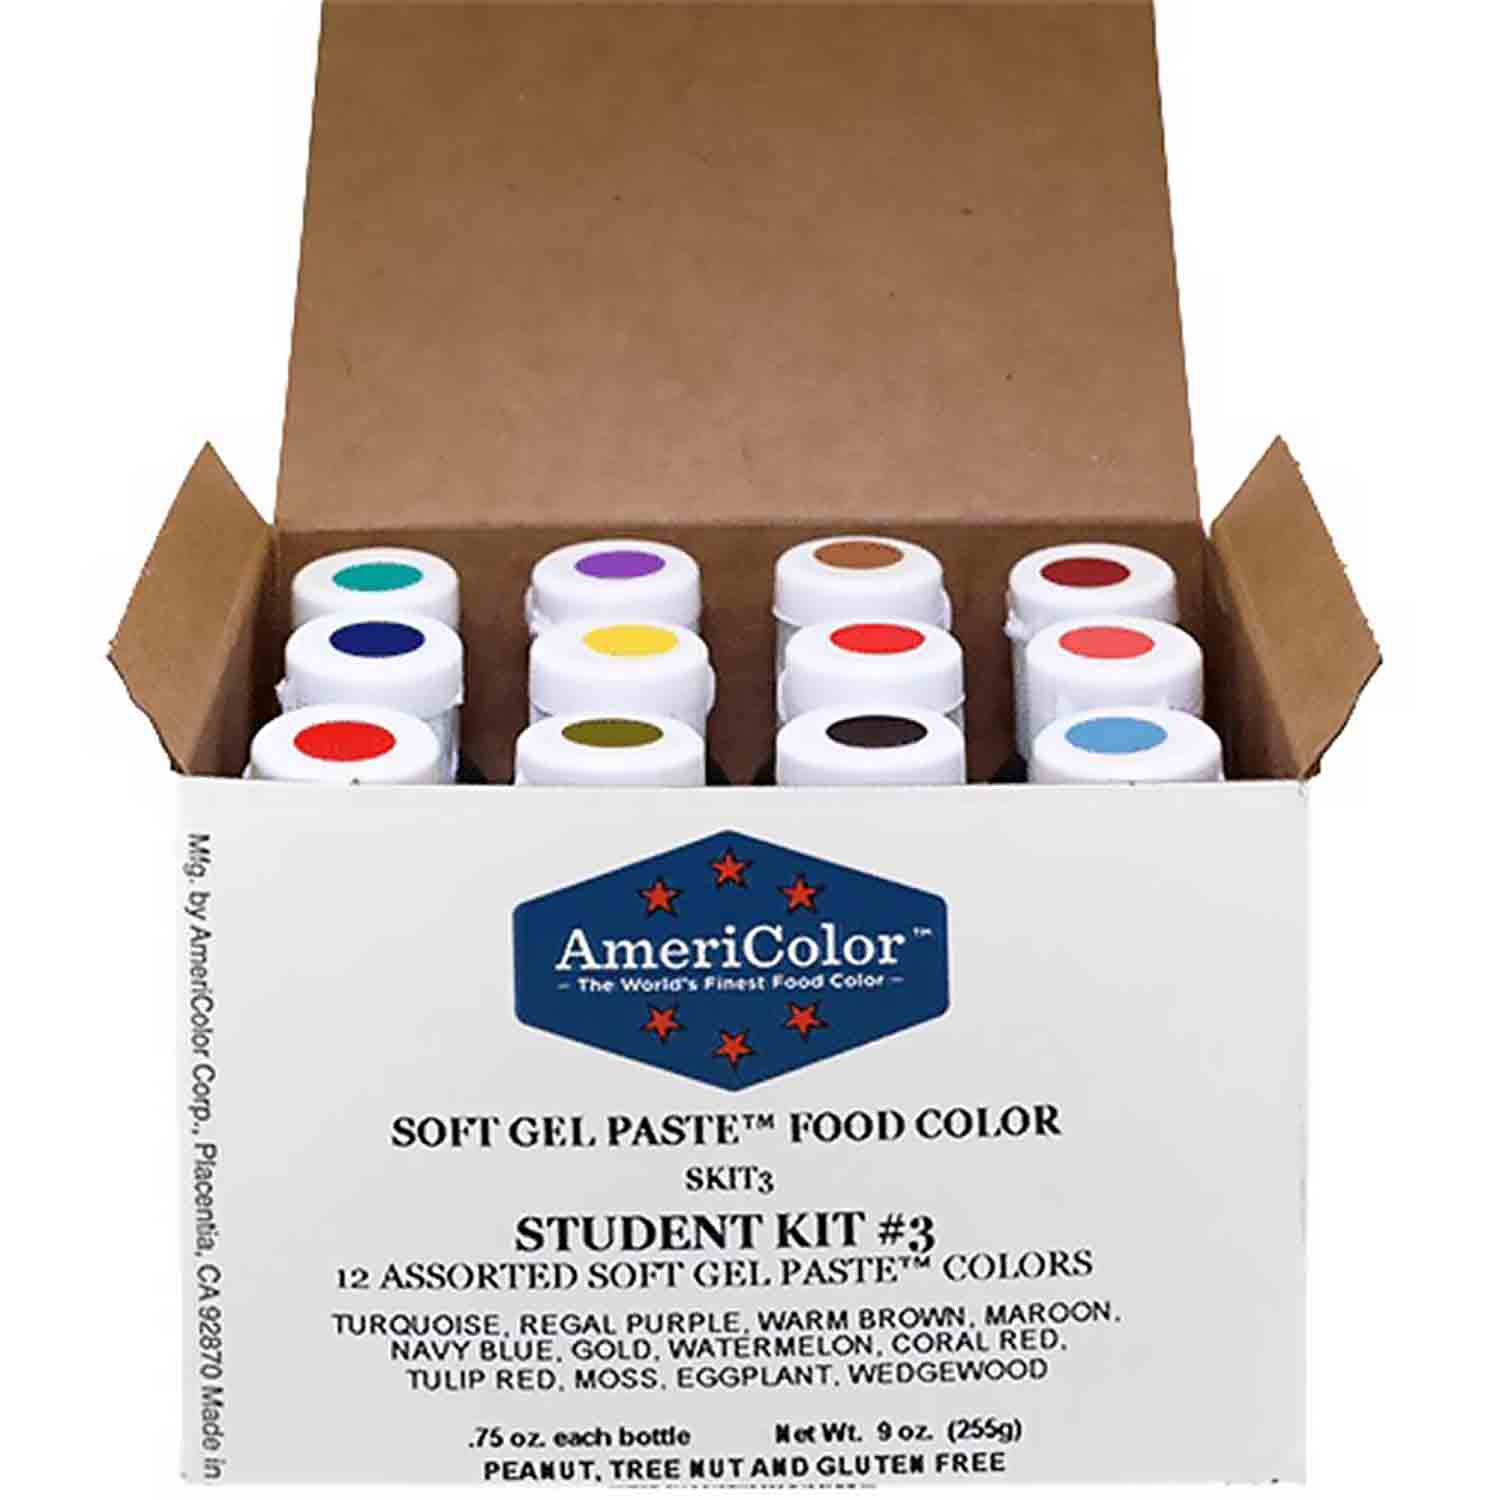 Student #3 Soft Gel Paste™ Food Color Kit